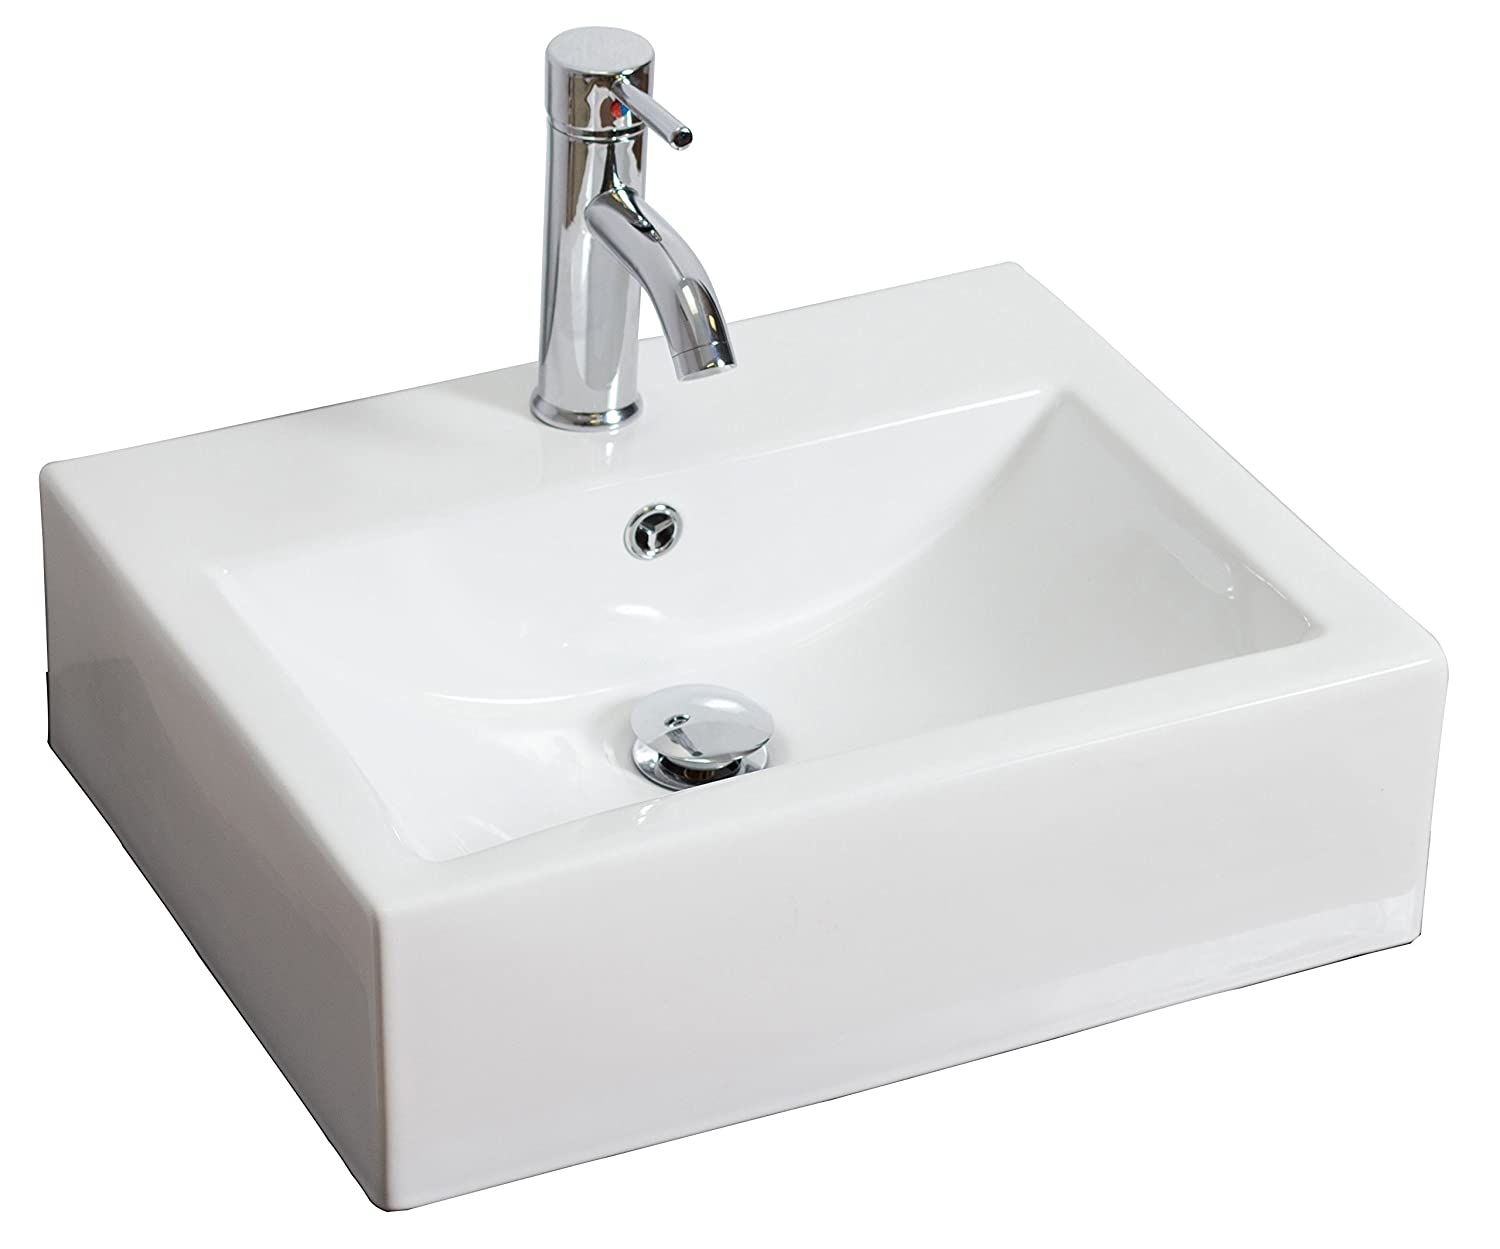 American Imaginations AI-15-685 Wall Mount Rectangle Vessel for Single Hole Faucet, 20.5-Inch x 16-Inch, White IMG Imports Inc.